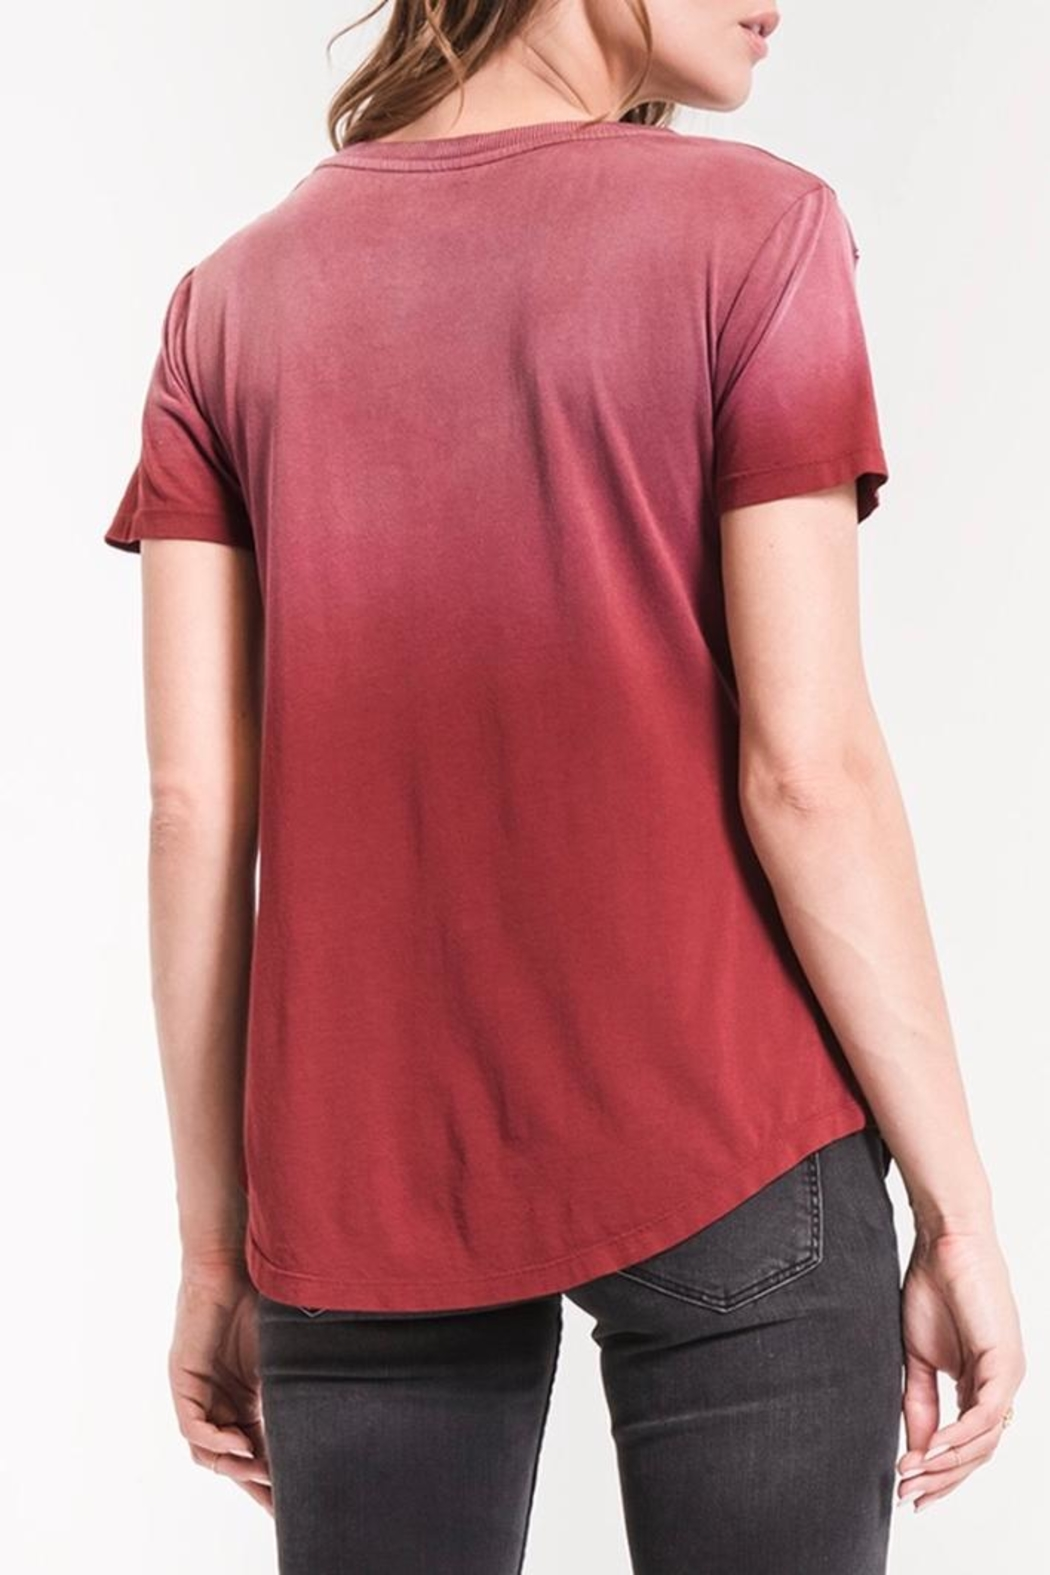 z supply Ombre V-Neck Tee - Front Full Image